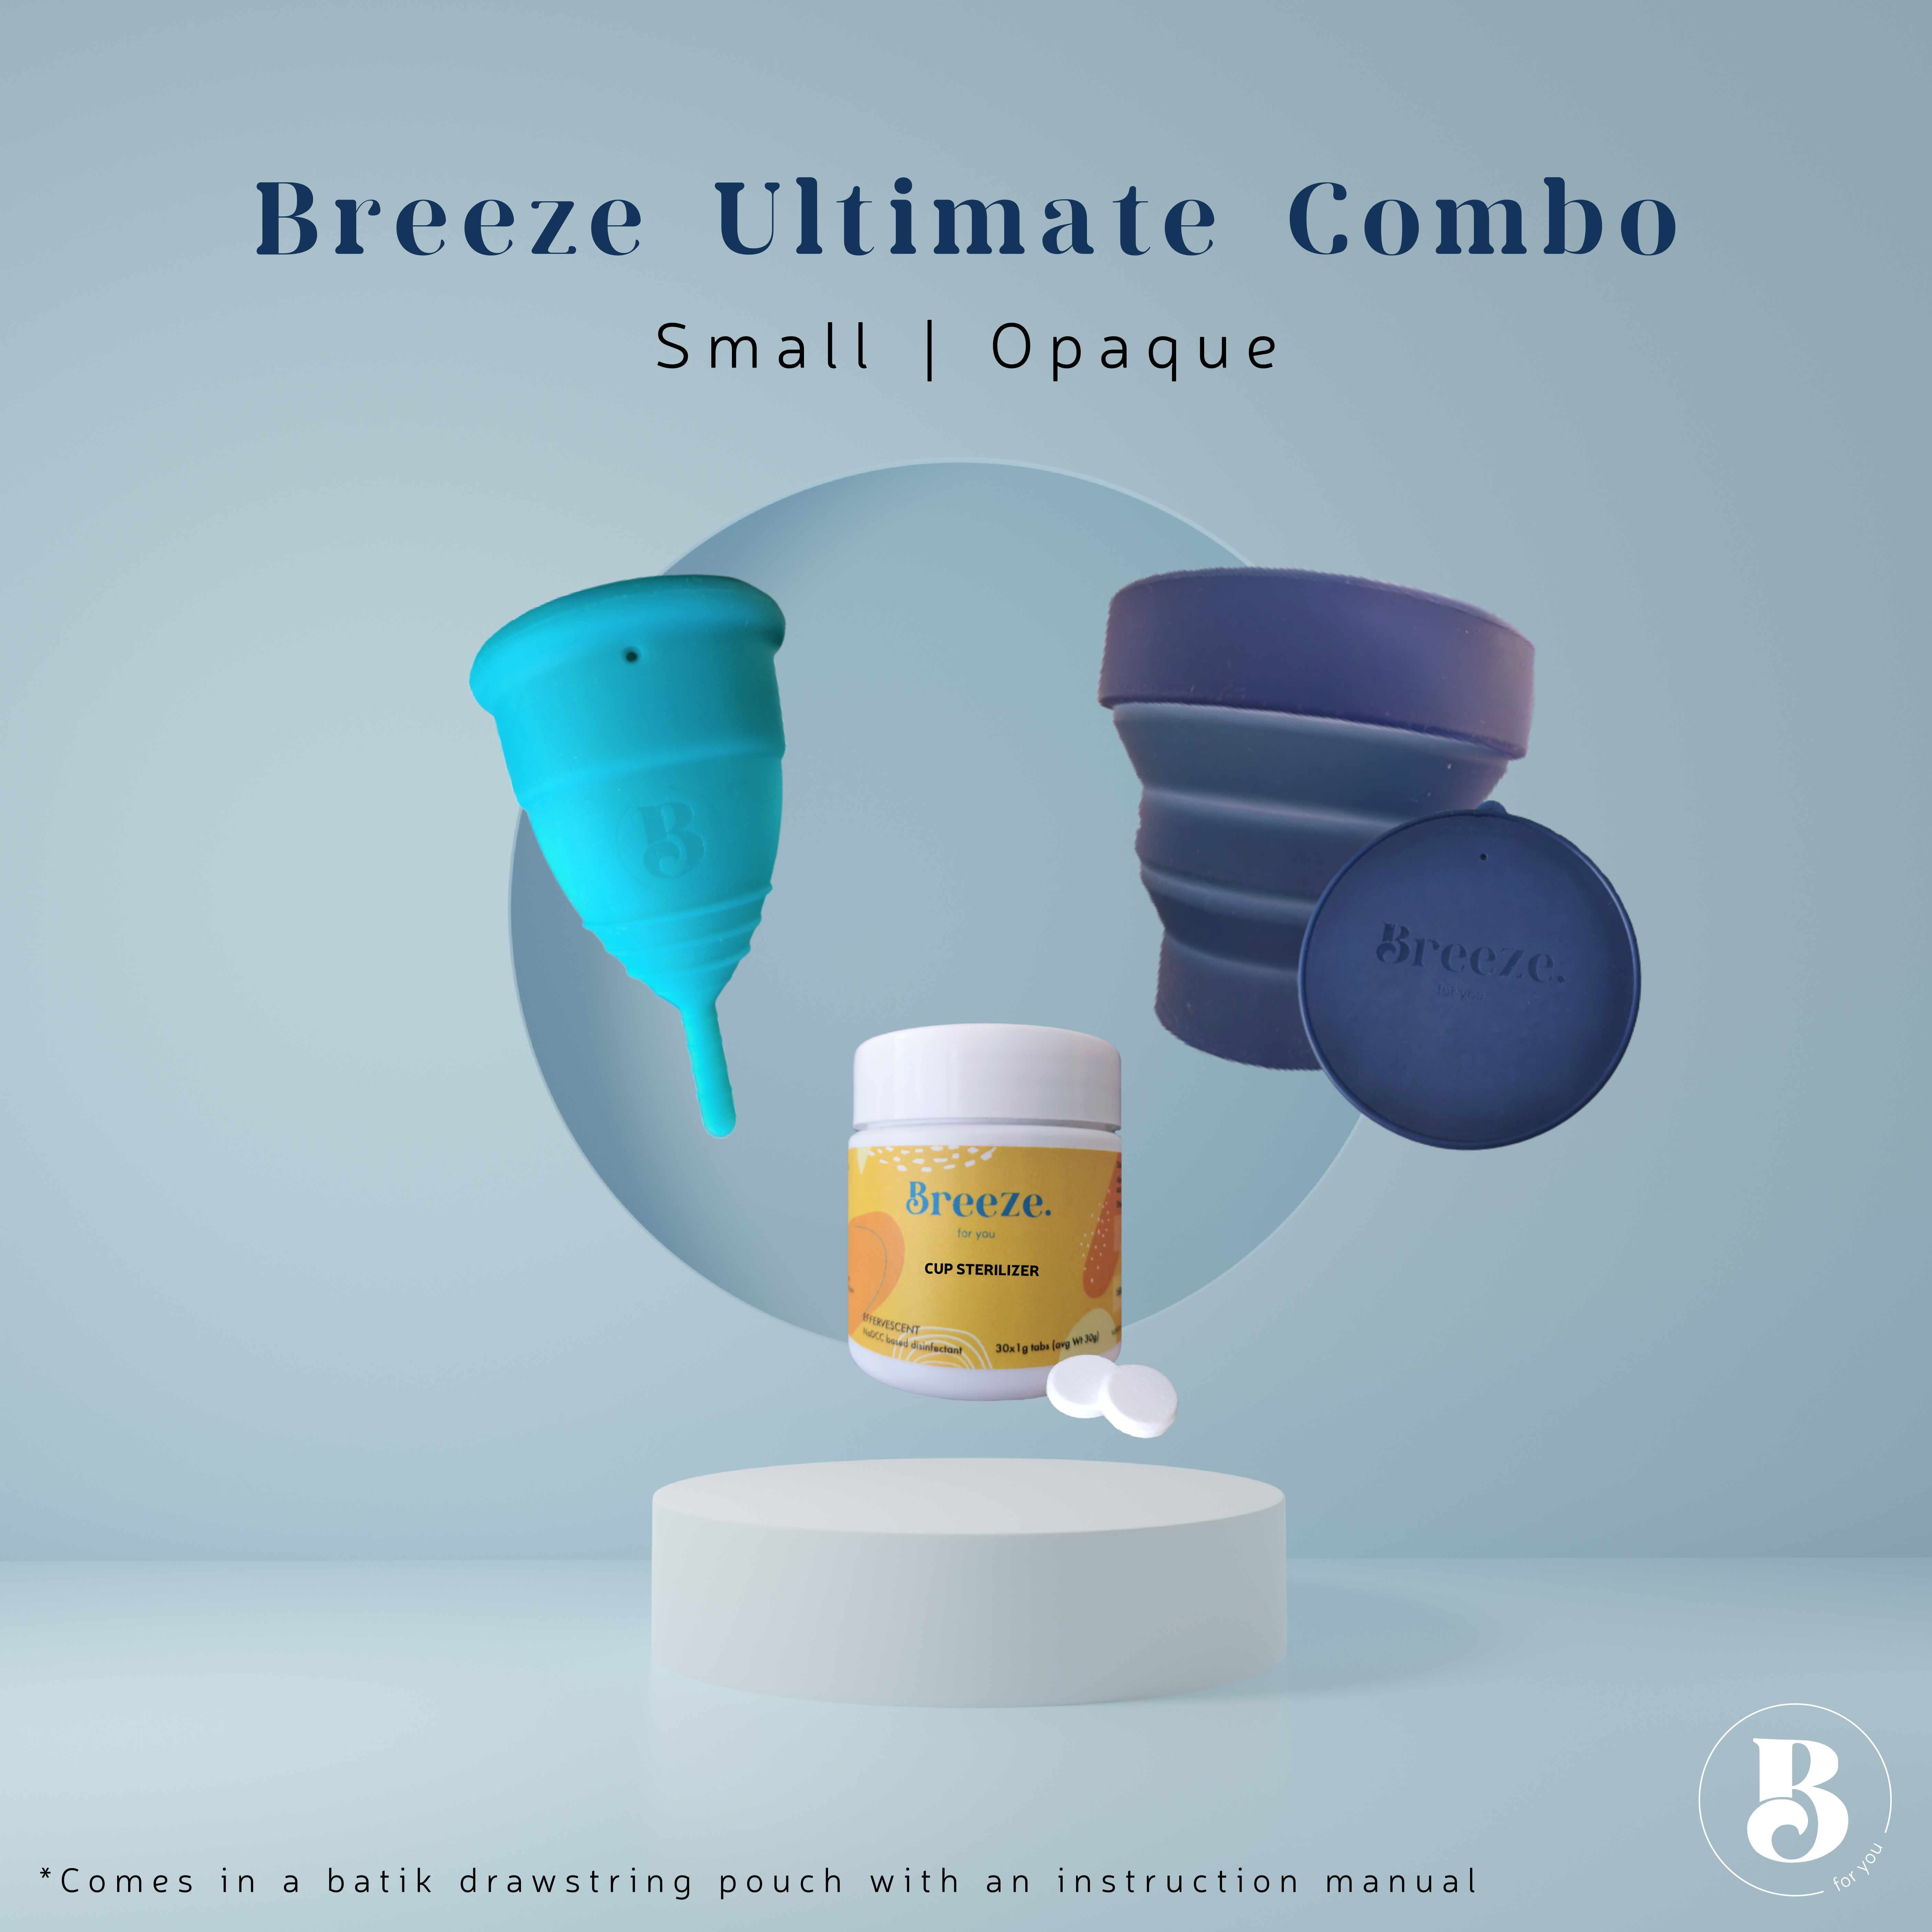 Breeze Ultimate Combo Small Opaque